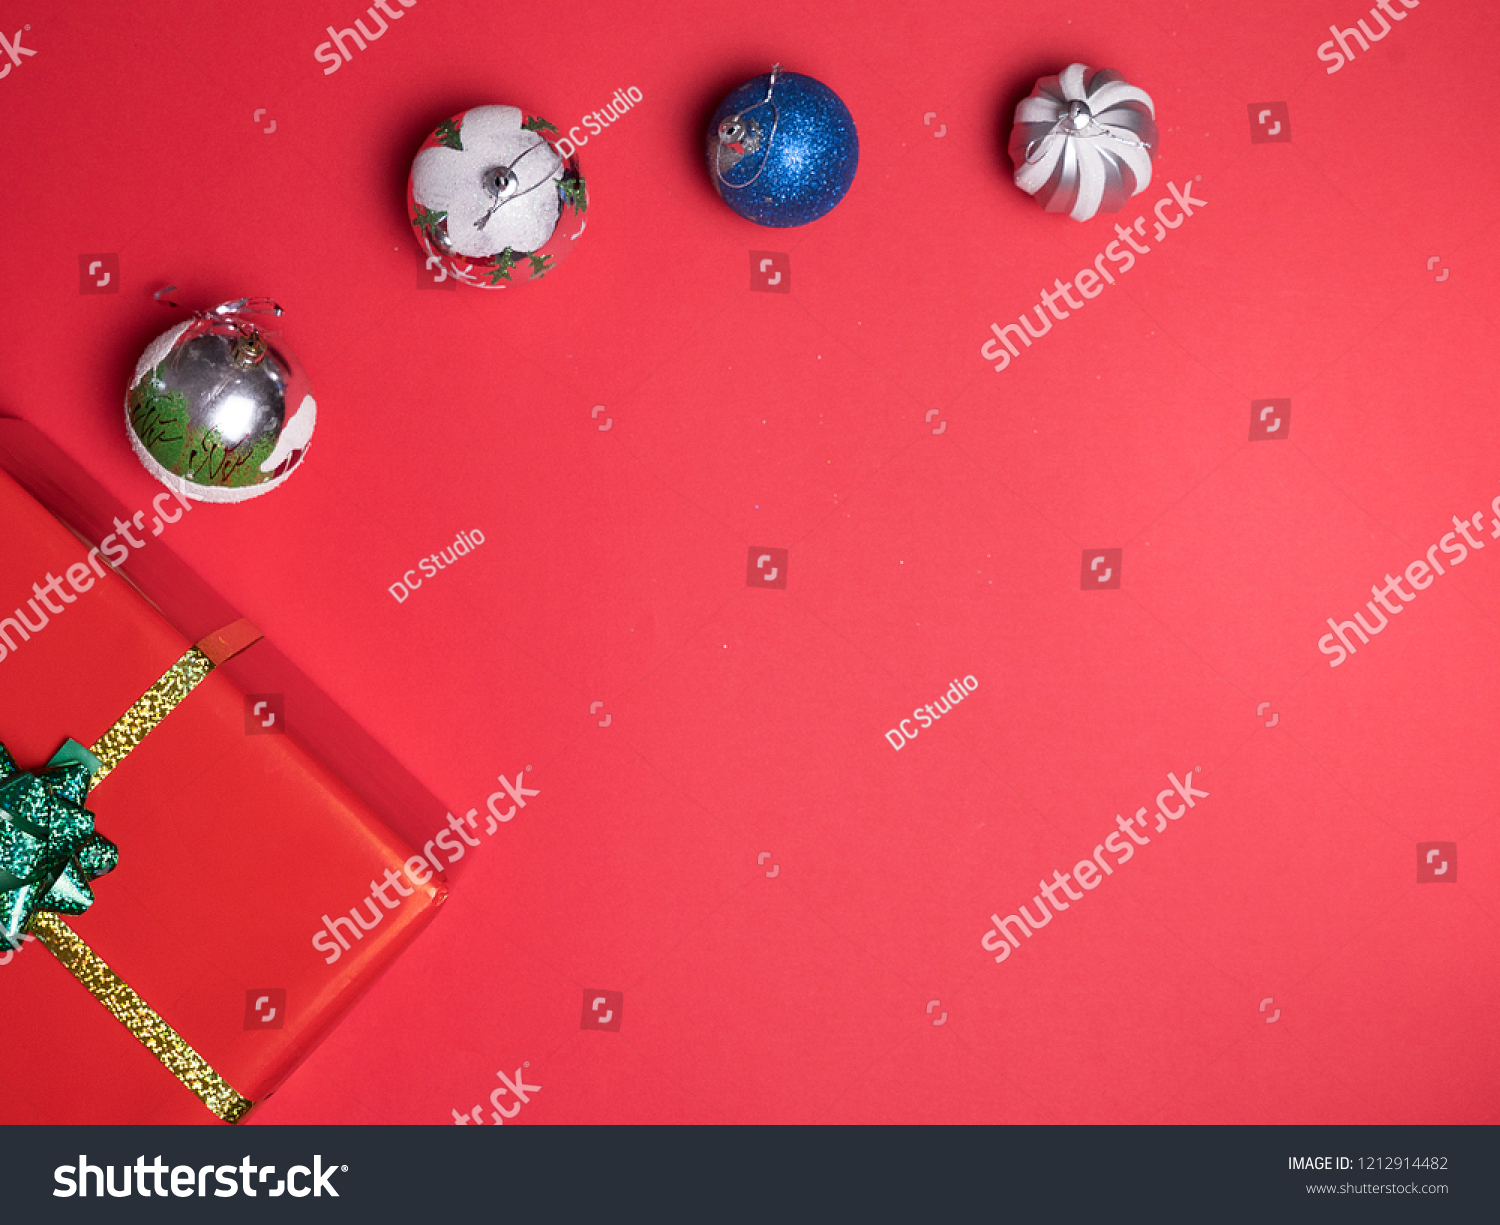 Christmas Background Gif Beautiful Christmas Red Gif Boxe On Stock Photo Edit Now